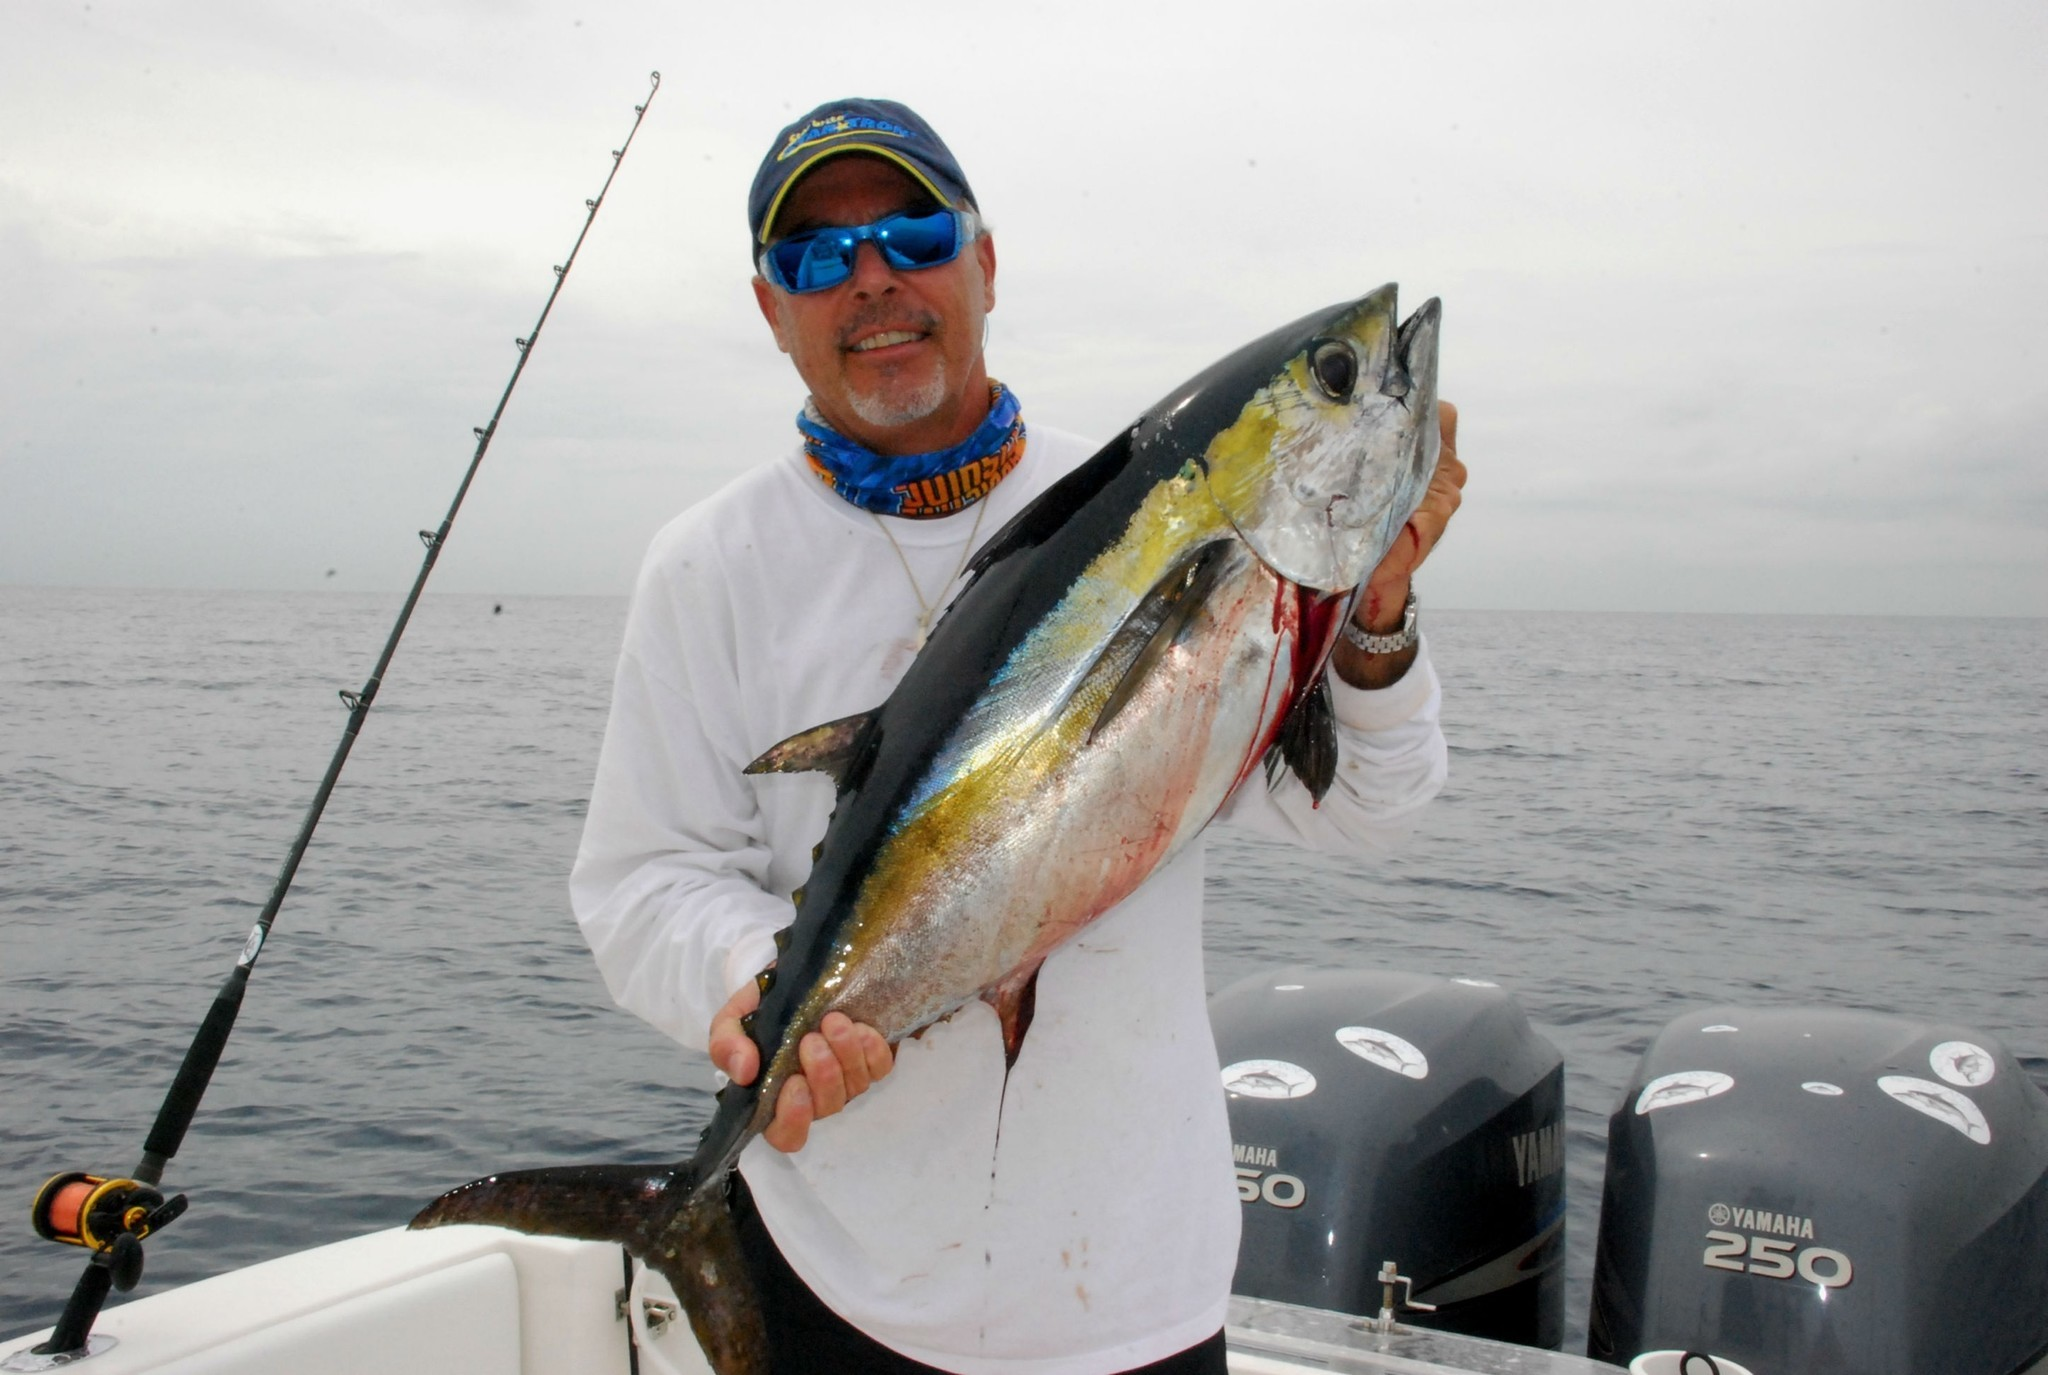 South florida fishing report slow offshore but some for South florida fishing